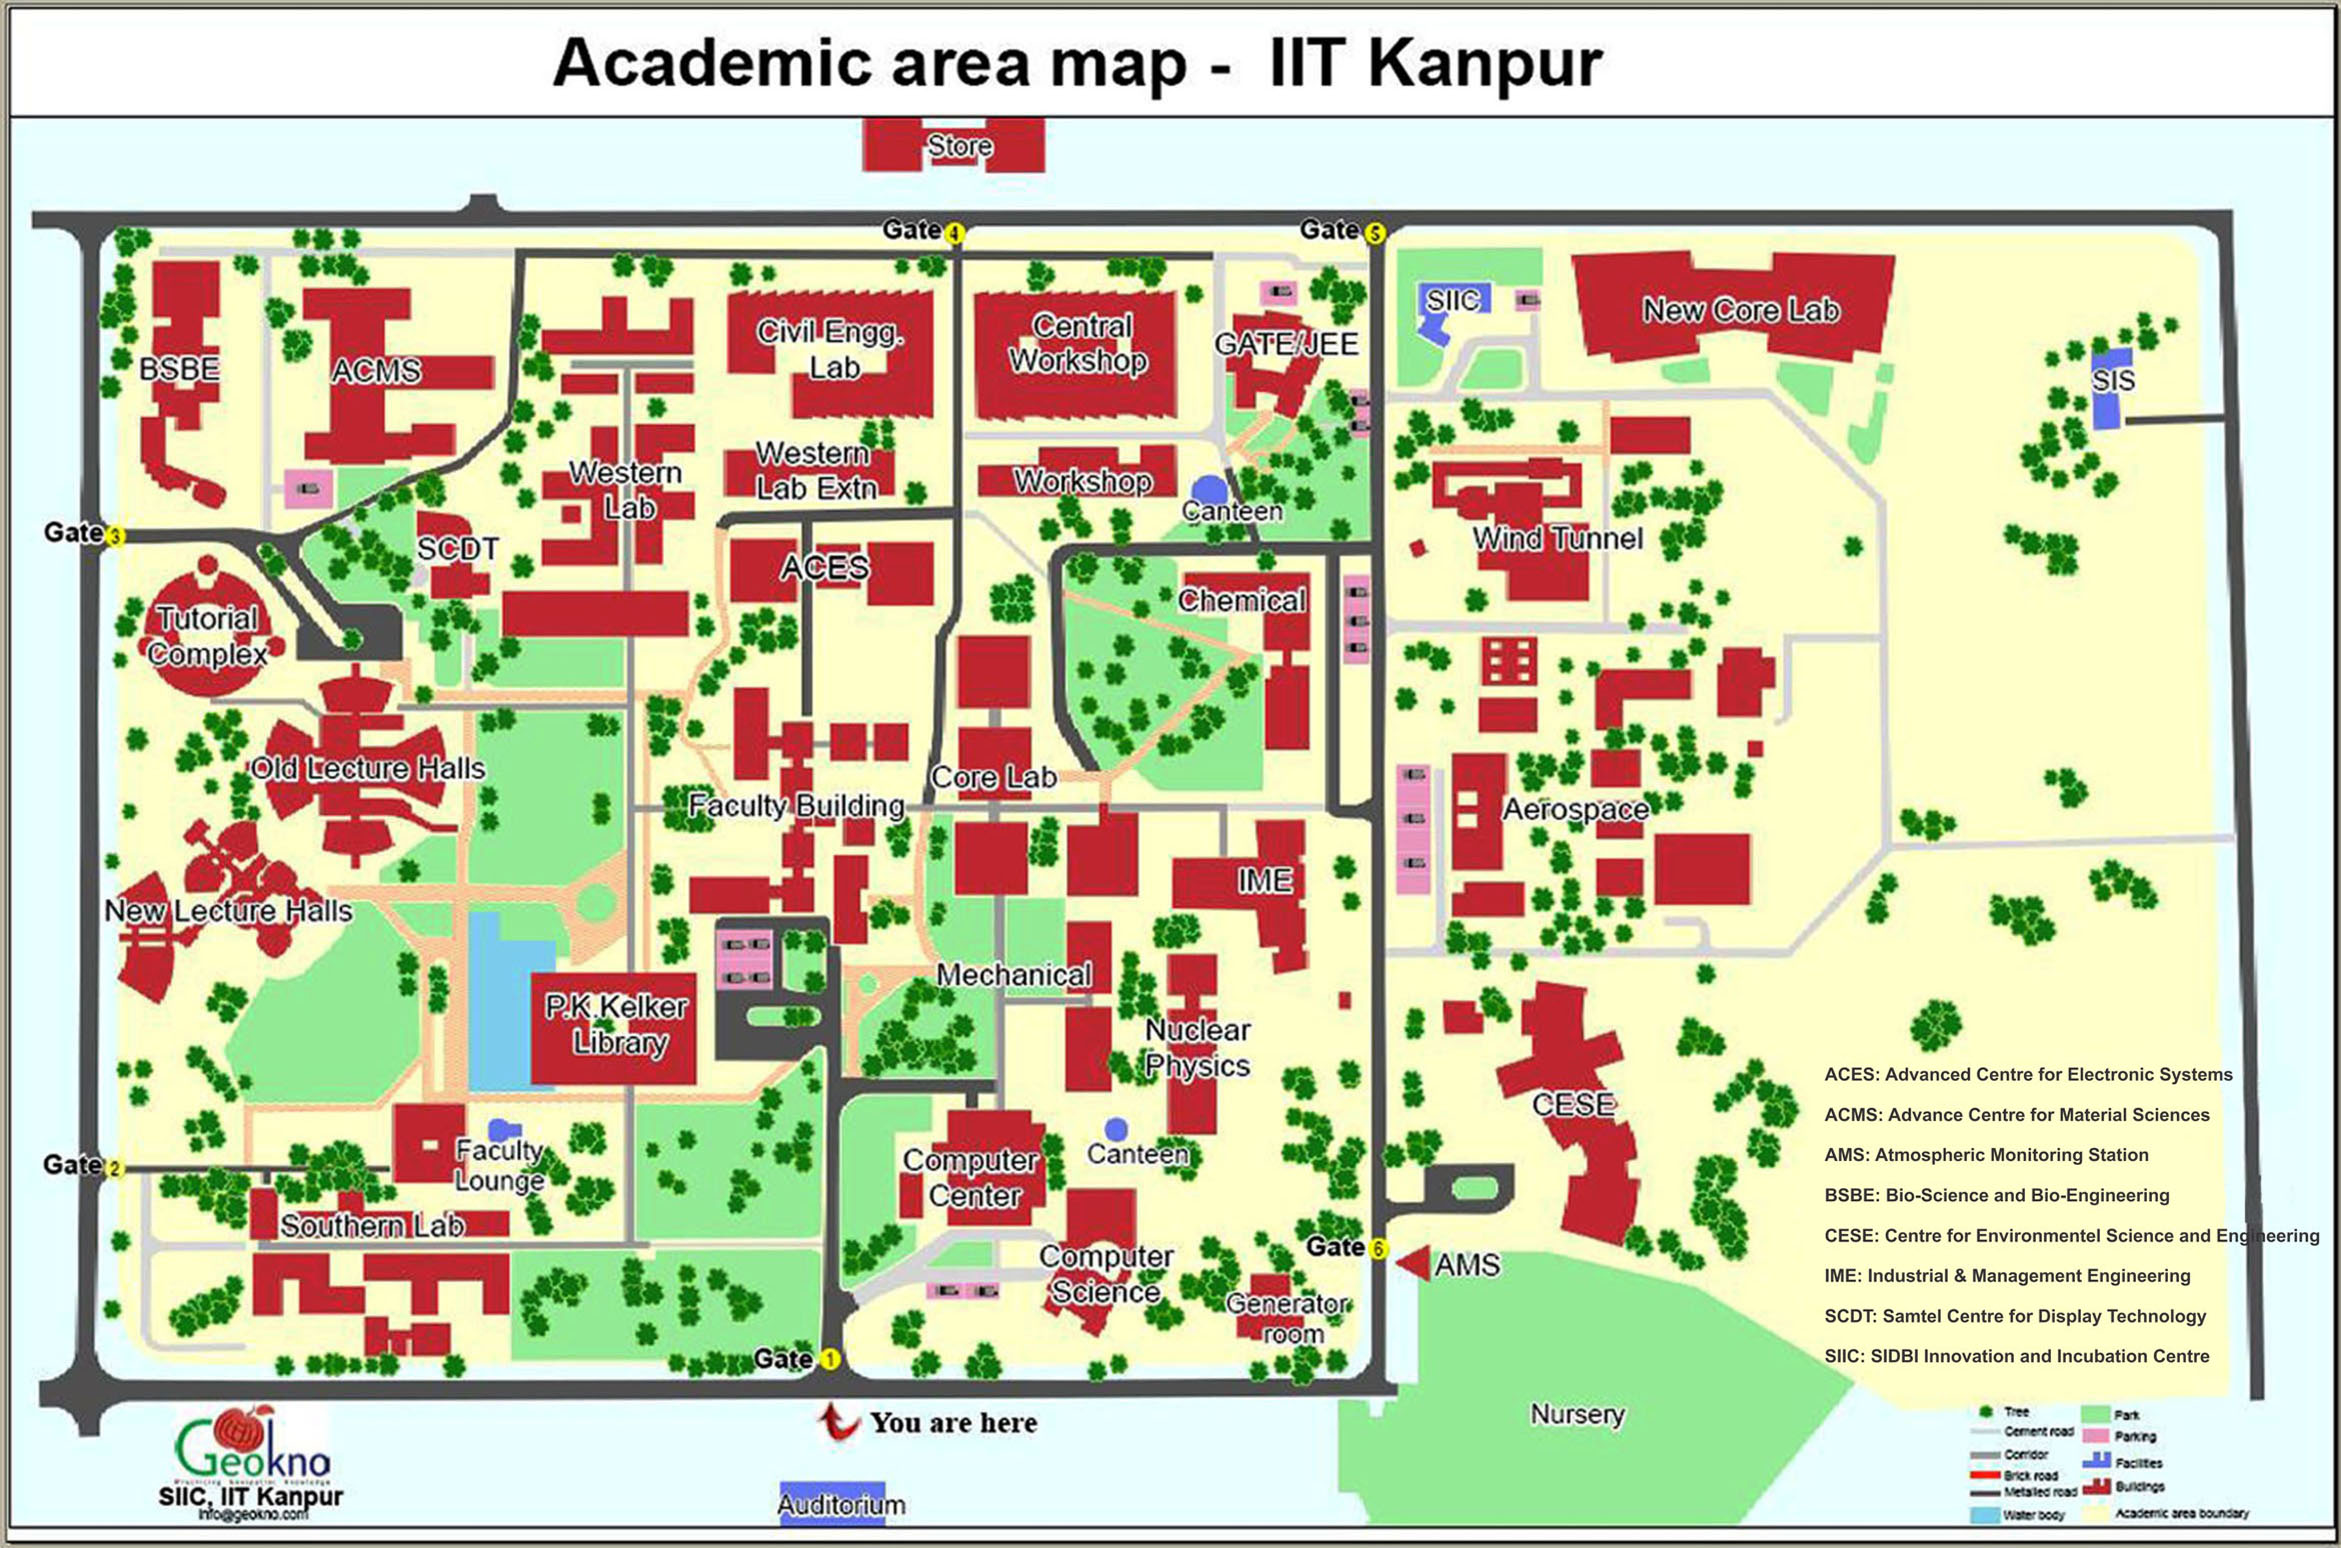 map of academic area